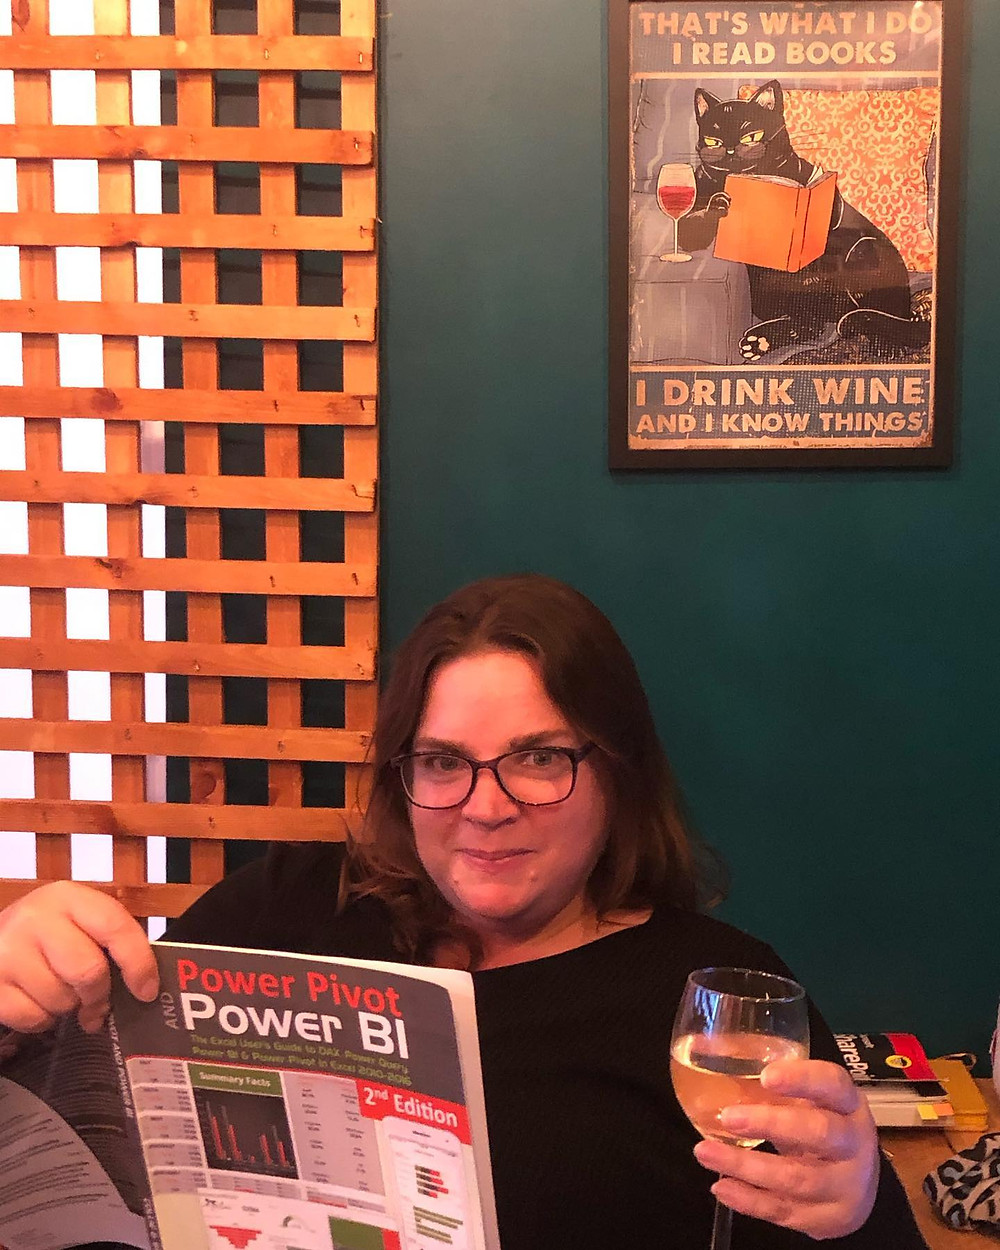 Learning Power BI with the help of a glass of wine